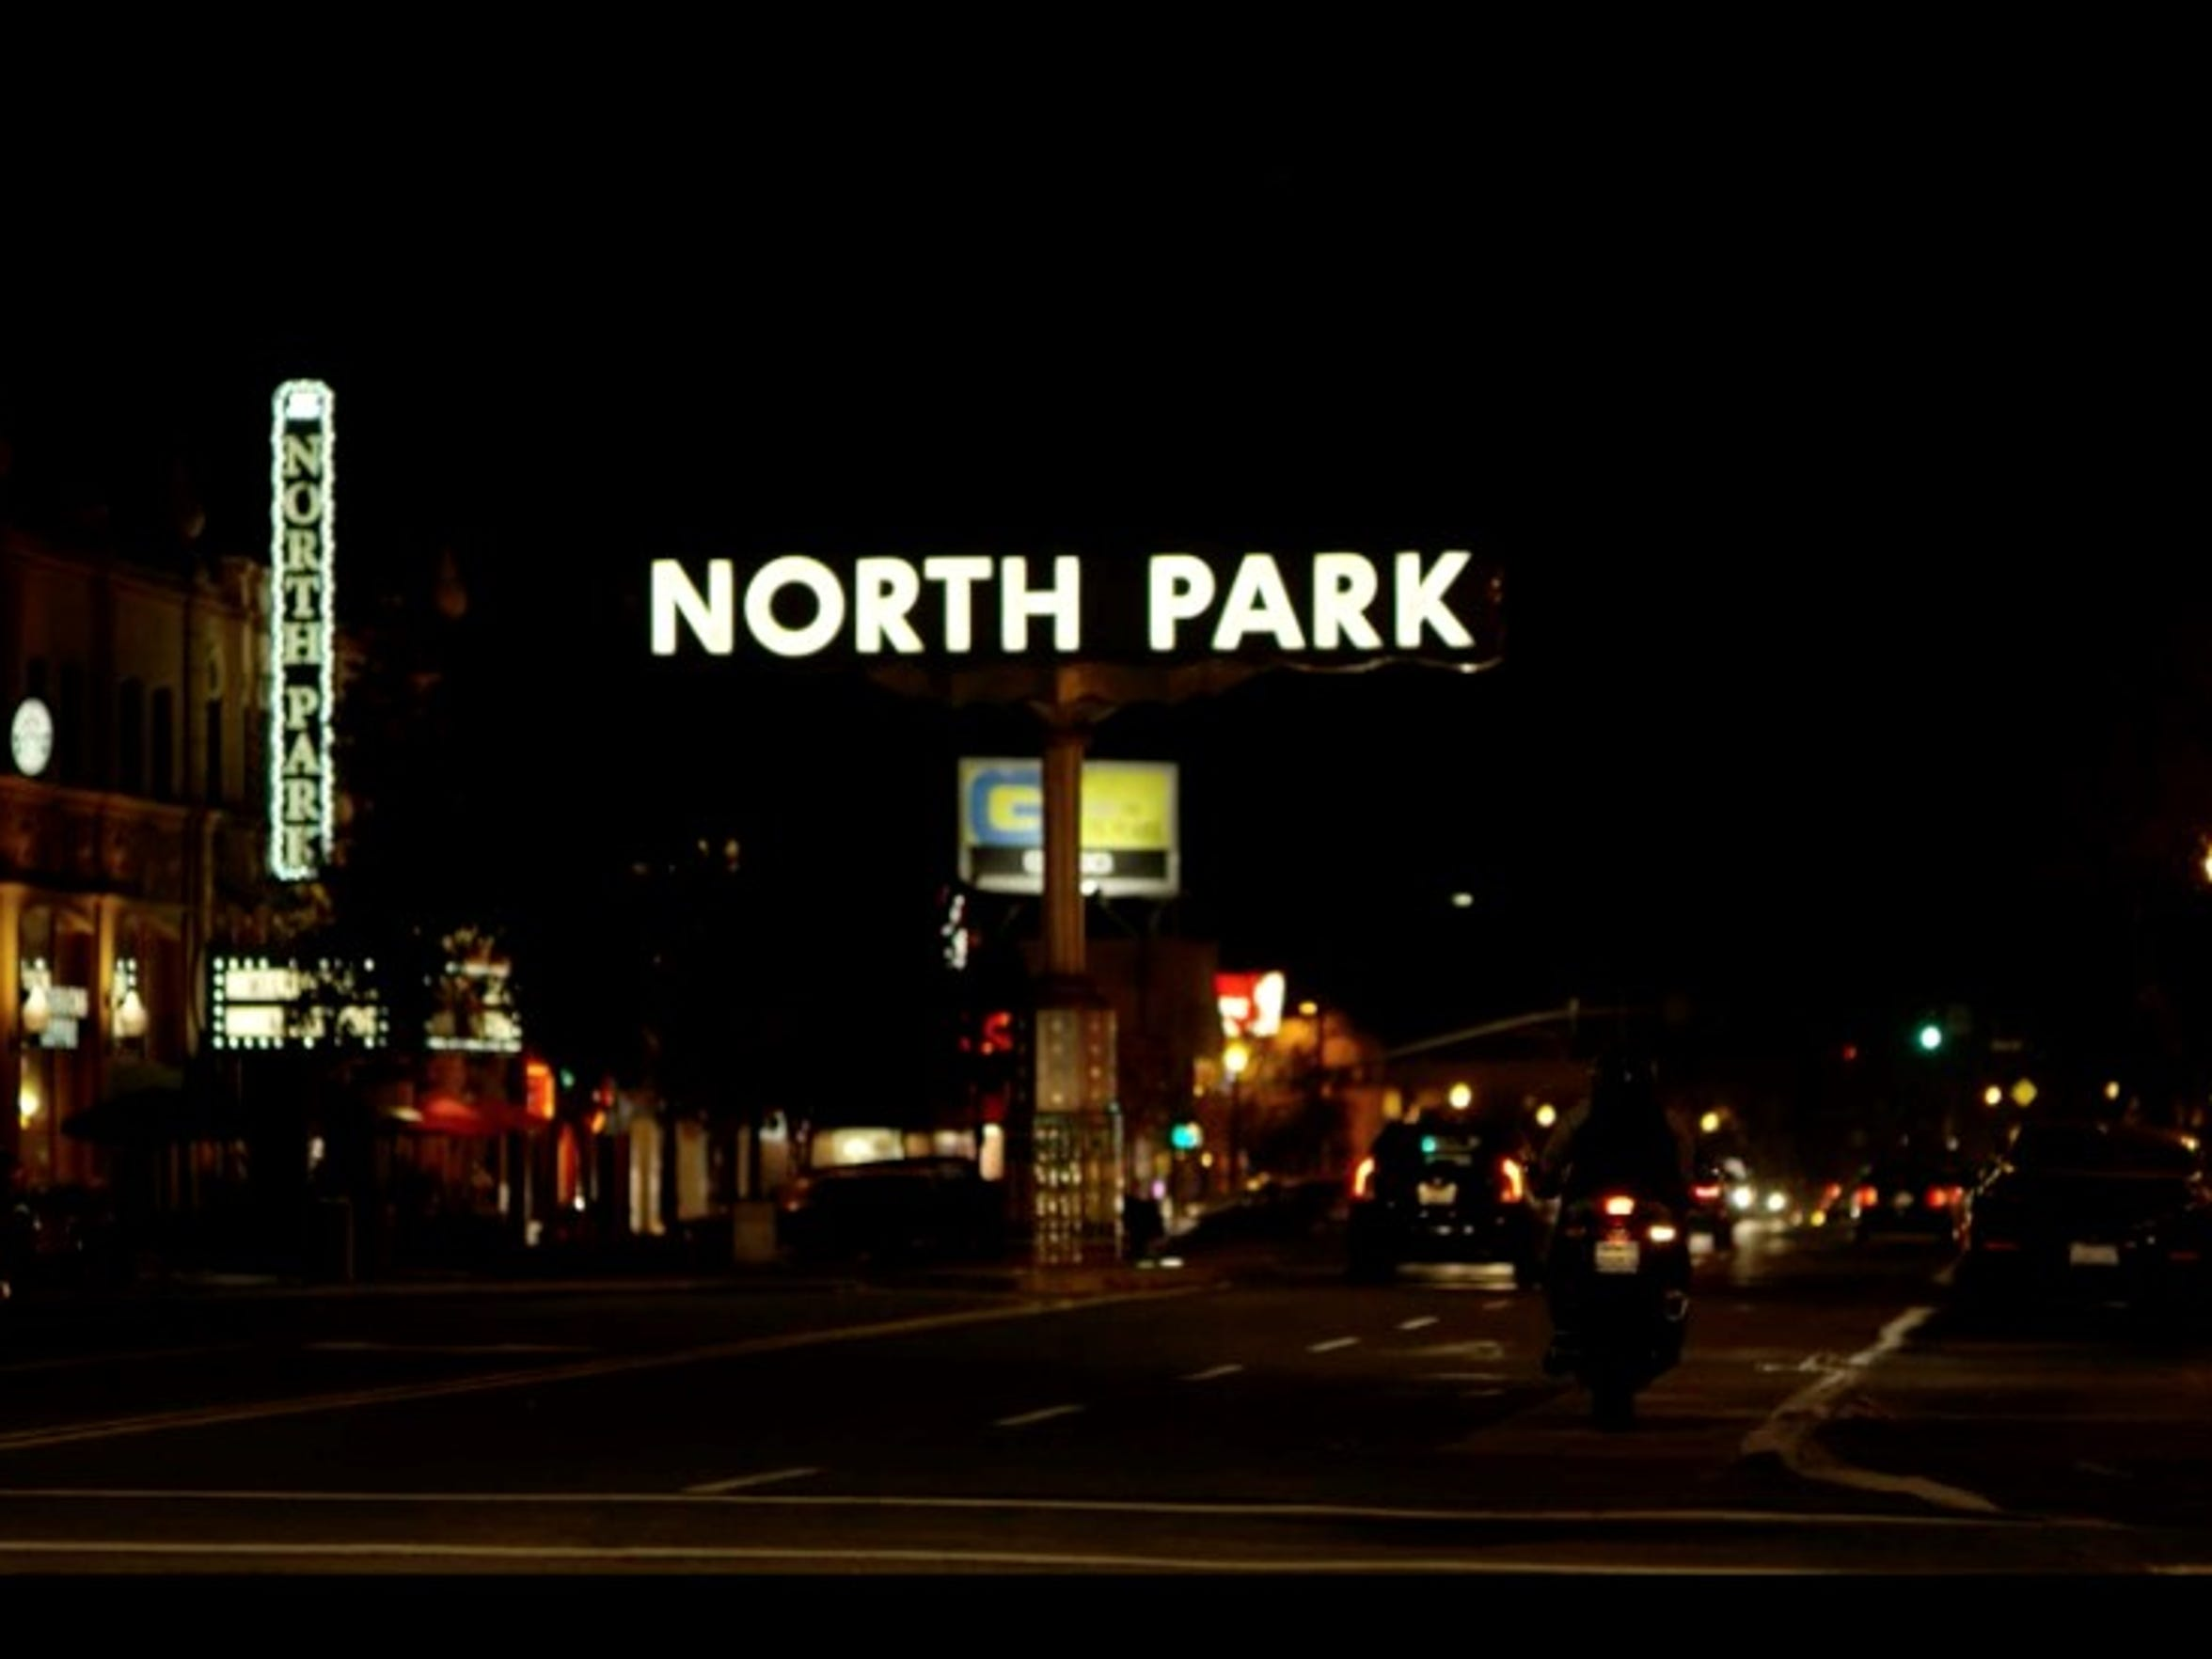 North Park has a hipster vibe perfect for a night on